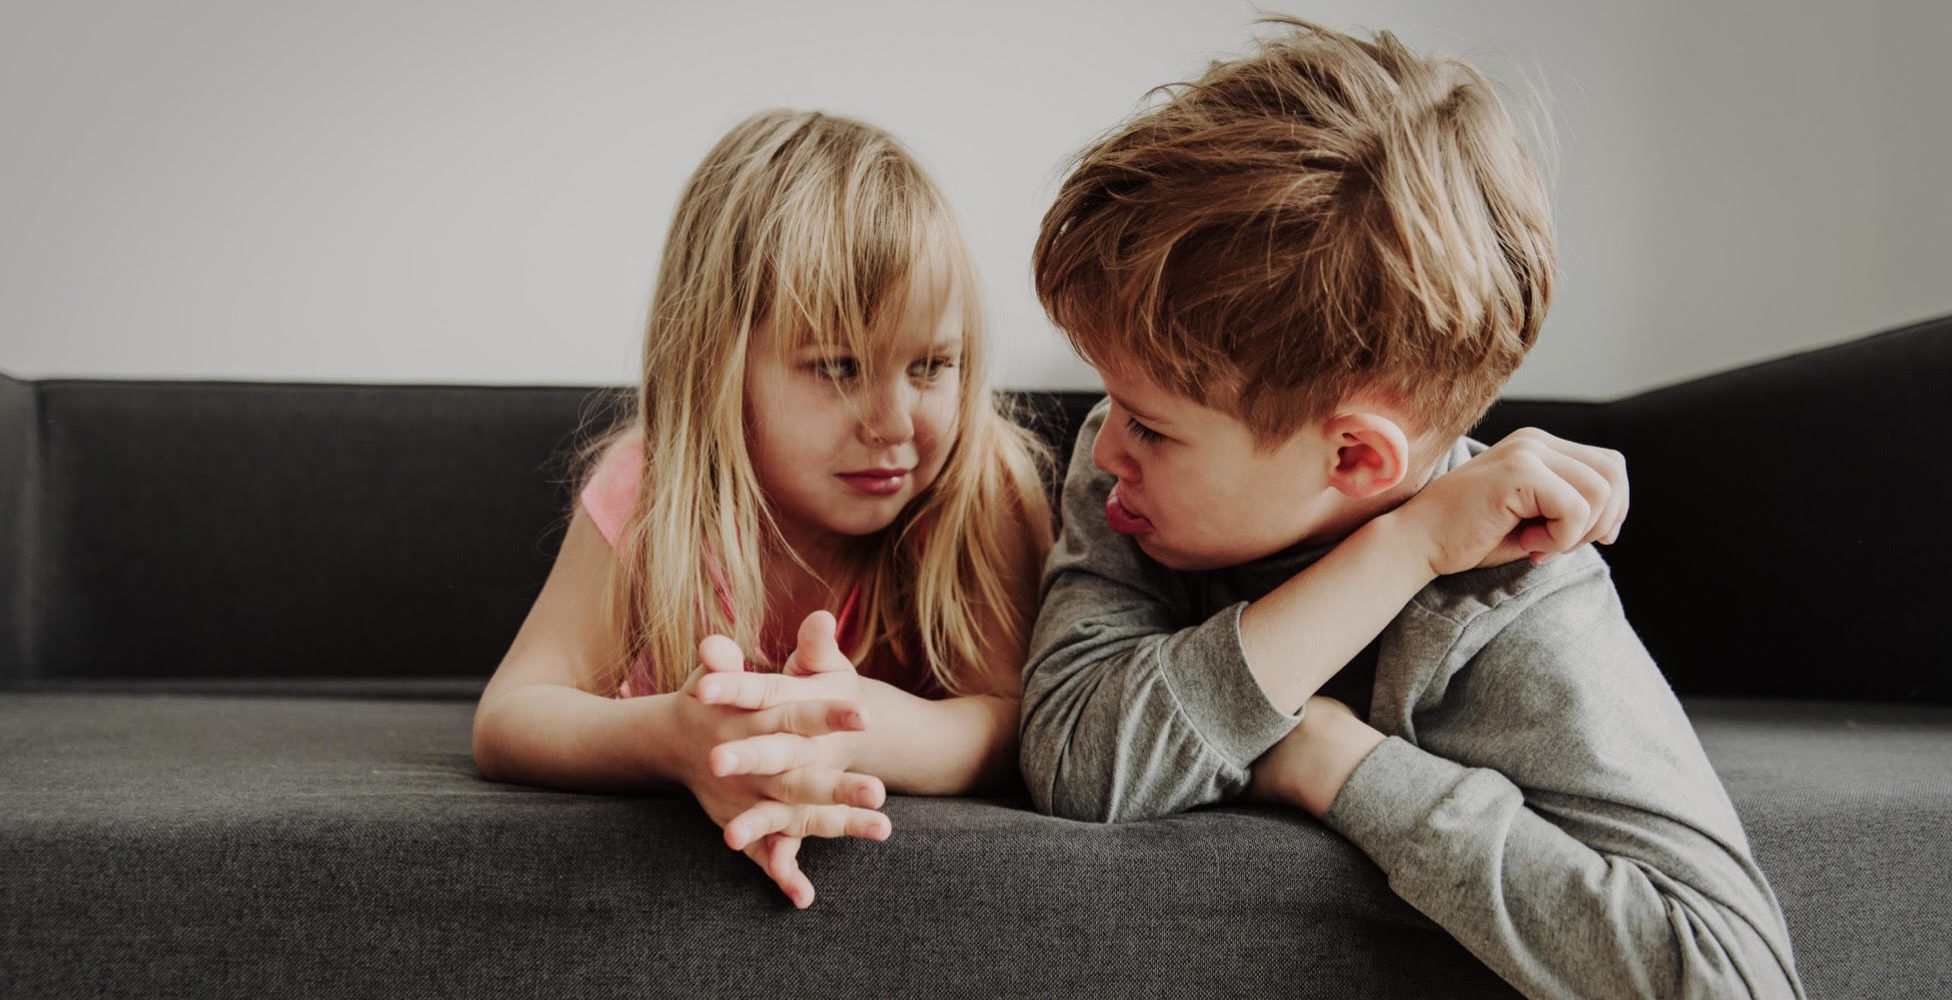 Positive Ways to Ease Sibling Rivalry